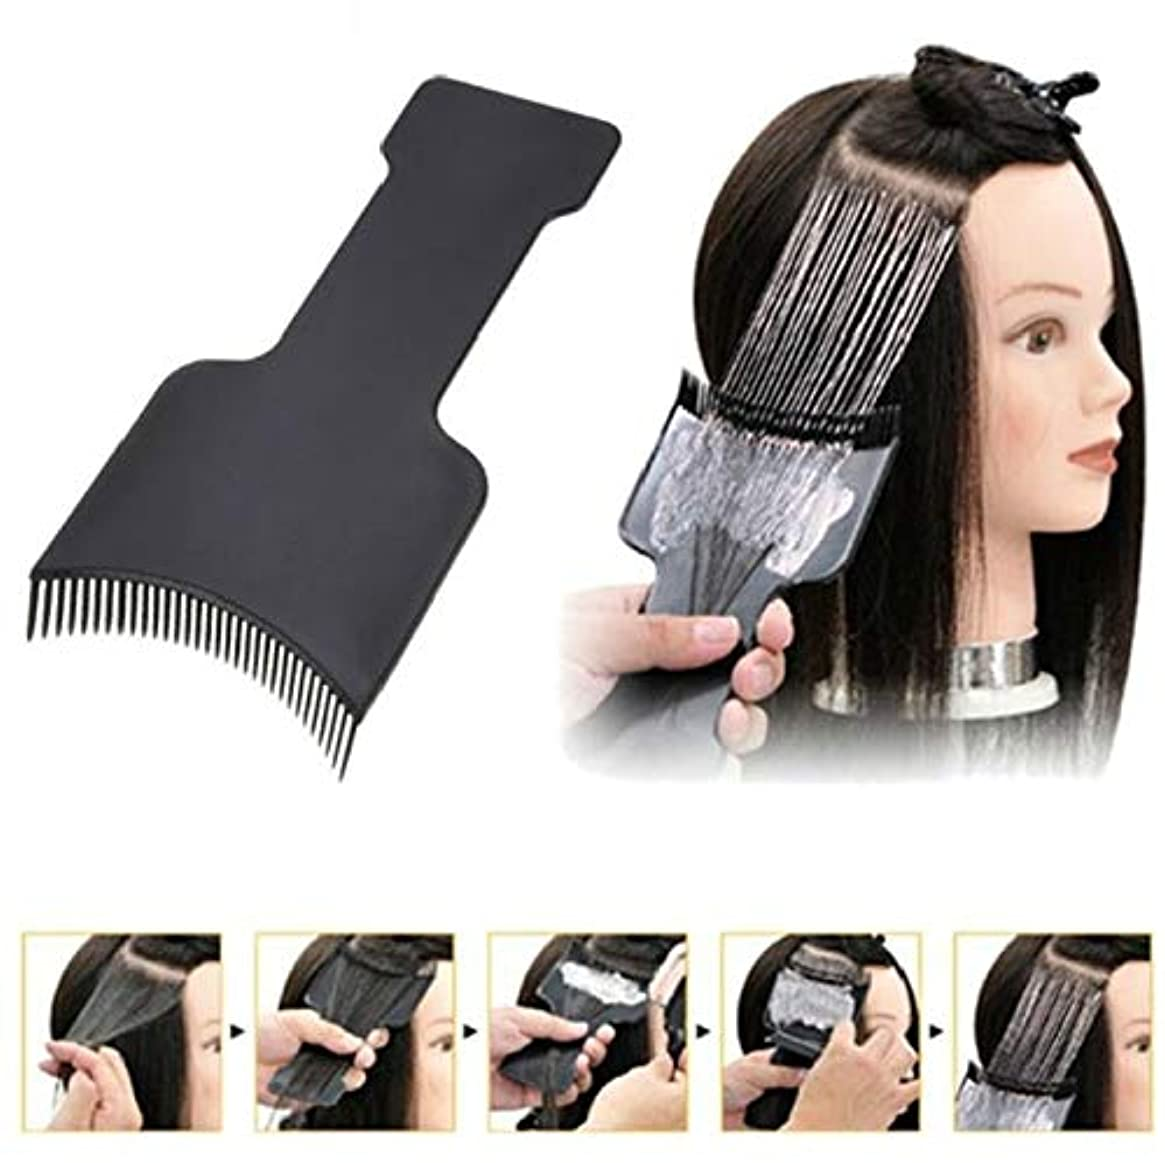 悪化させる階層喉頭2 Size/set Professional Fashion Hairdressing Hair Applicator Brush Dispensing Salon Hair Coloring Dyeing Pick...